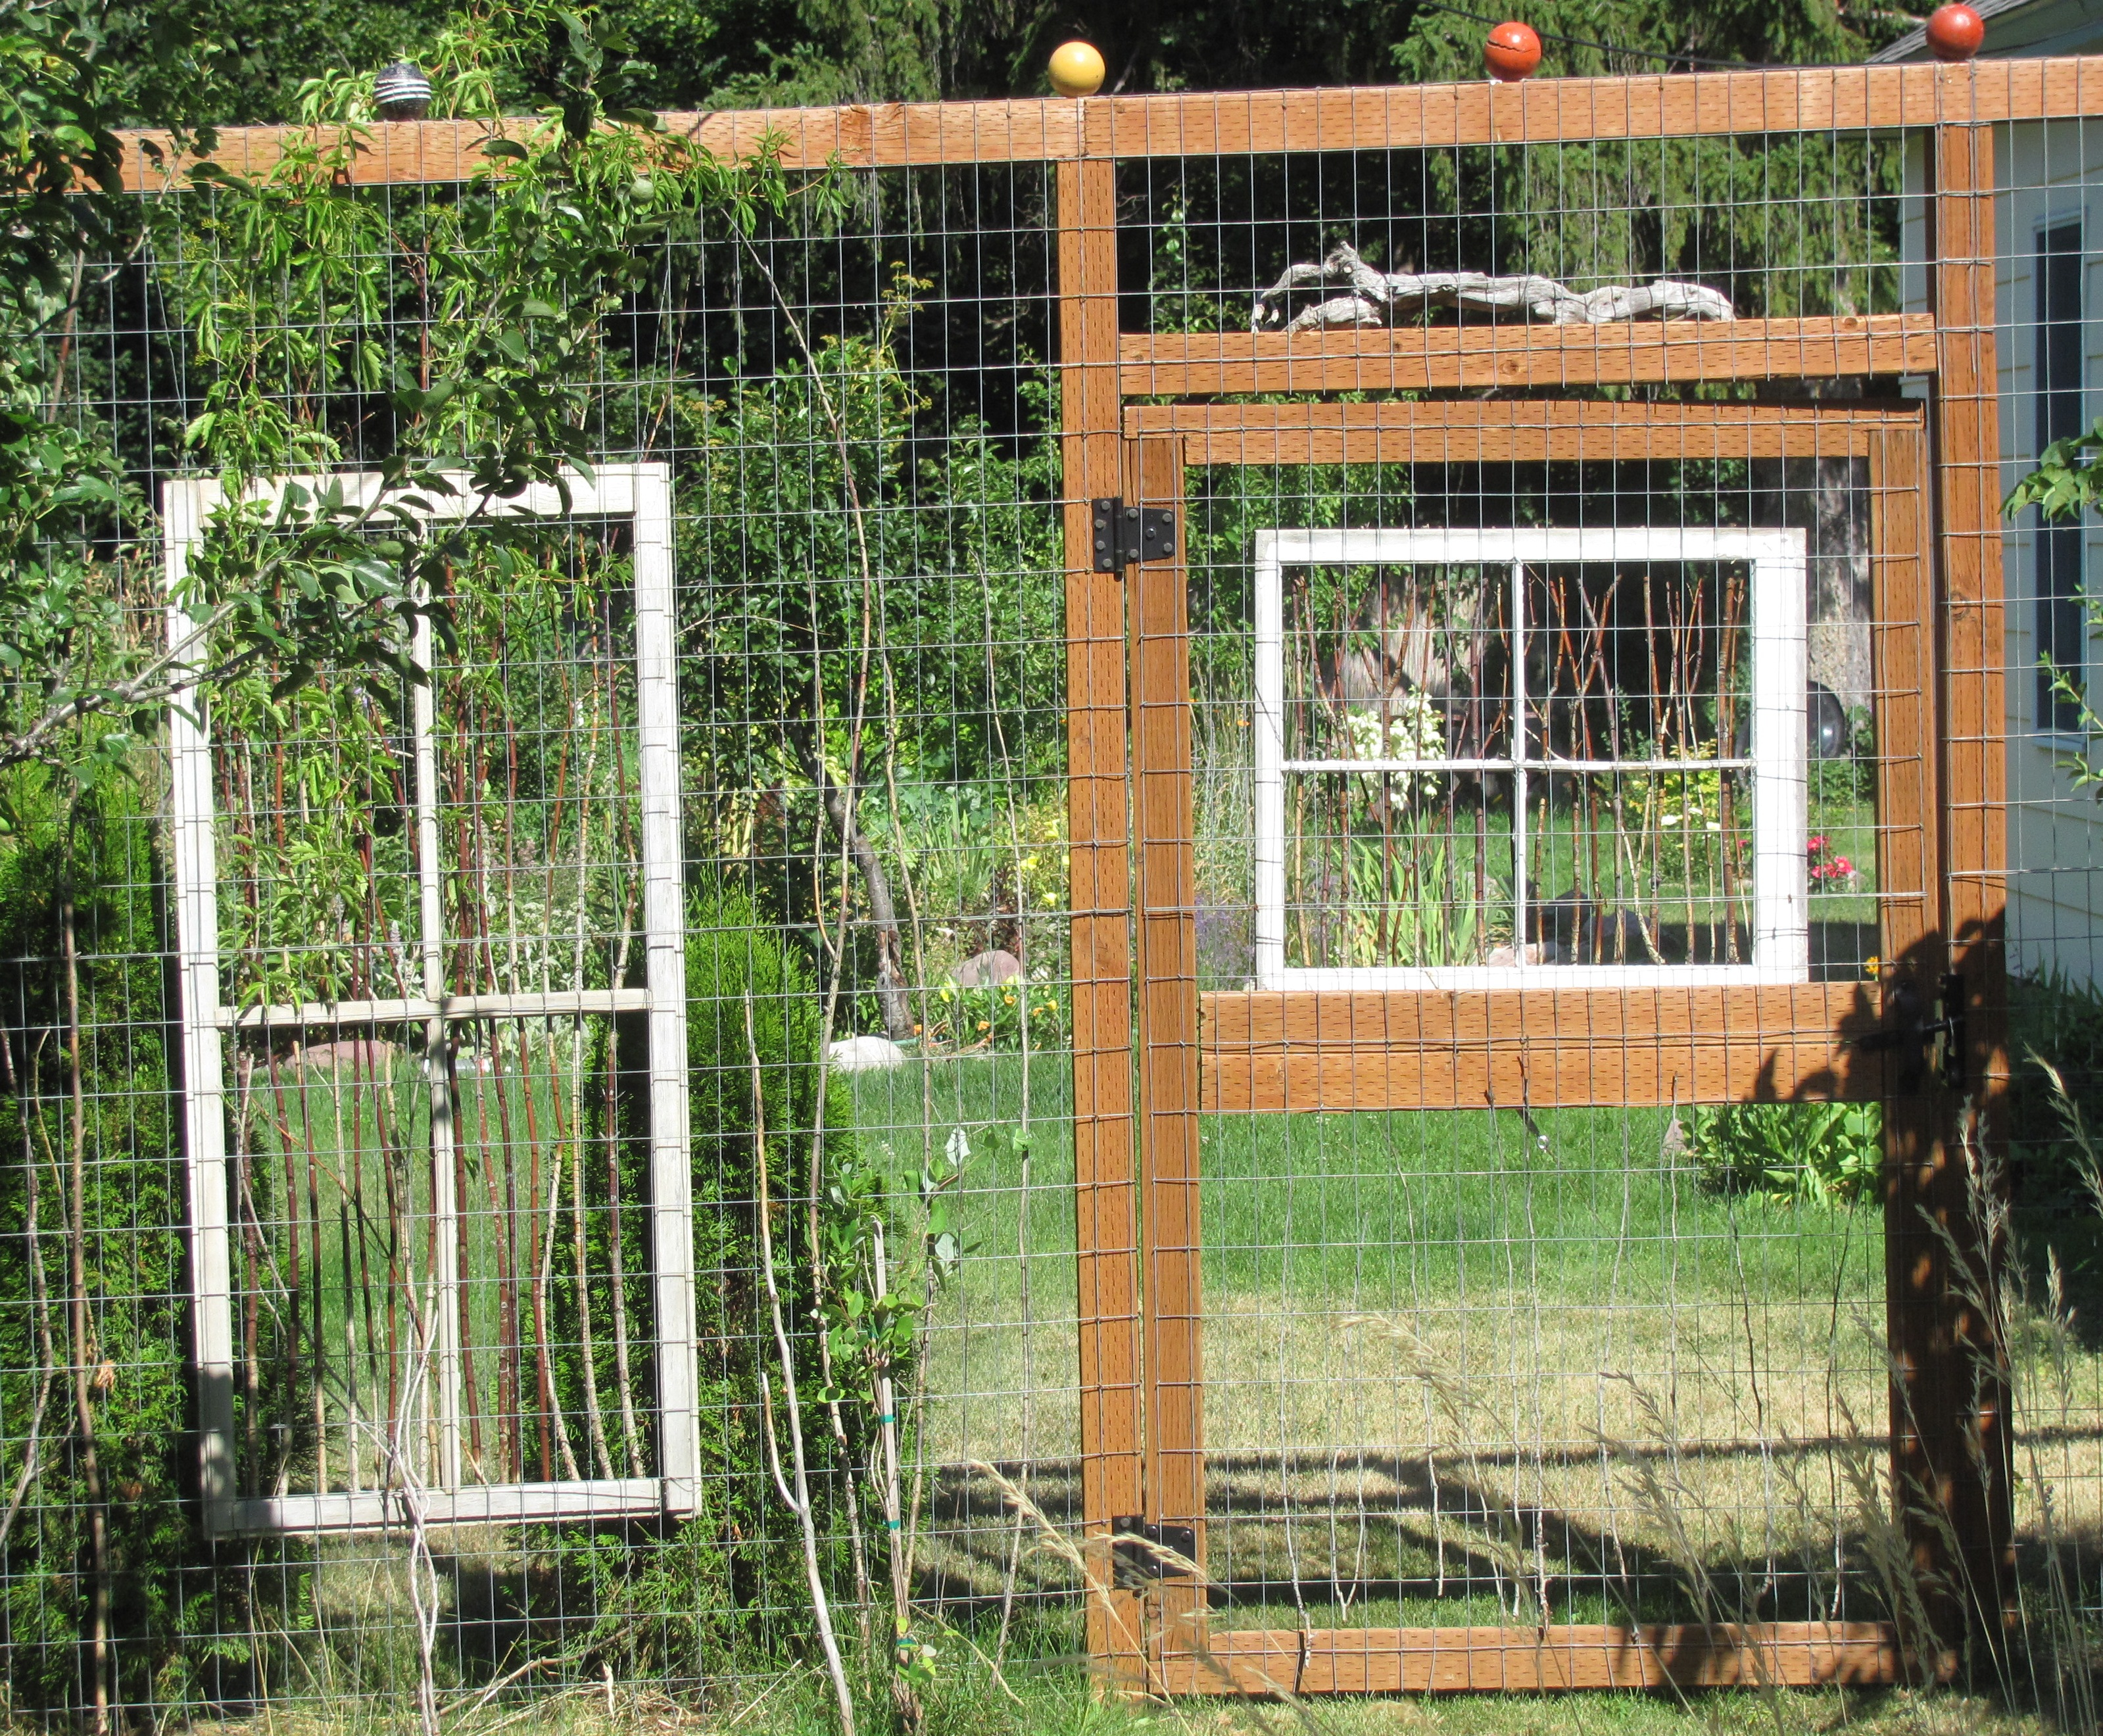 Diy Garden Window Plans Creative Fence Design Diy Ideas For Your Own Front Yard